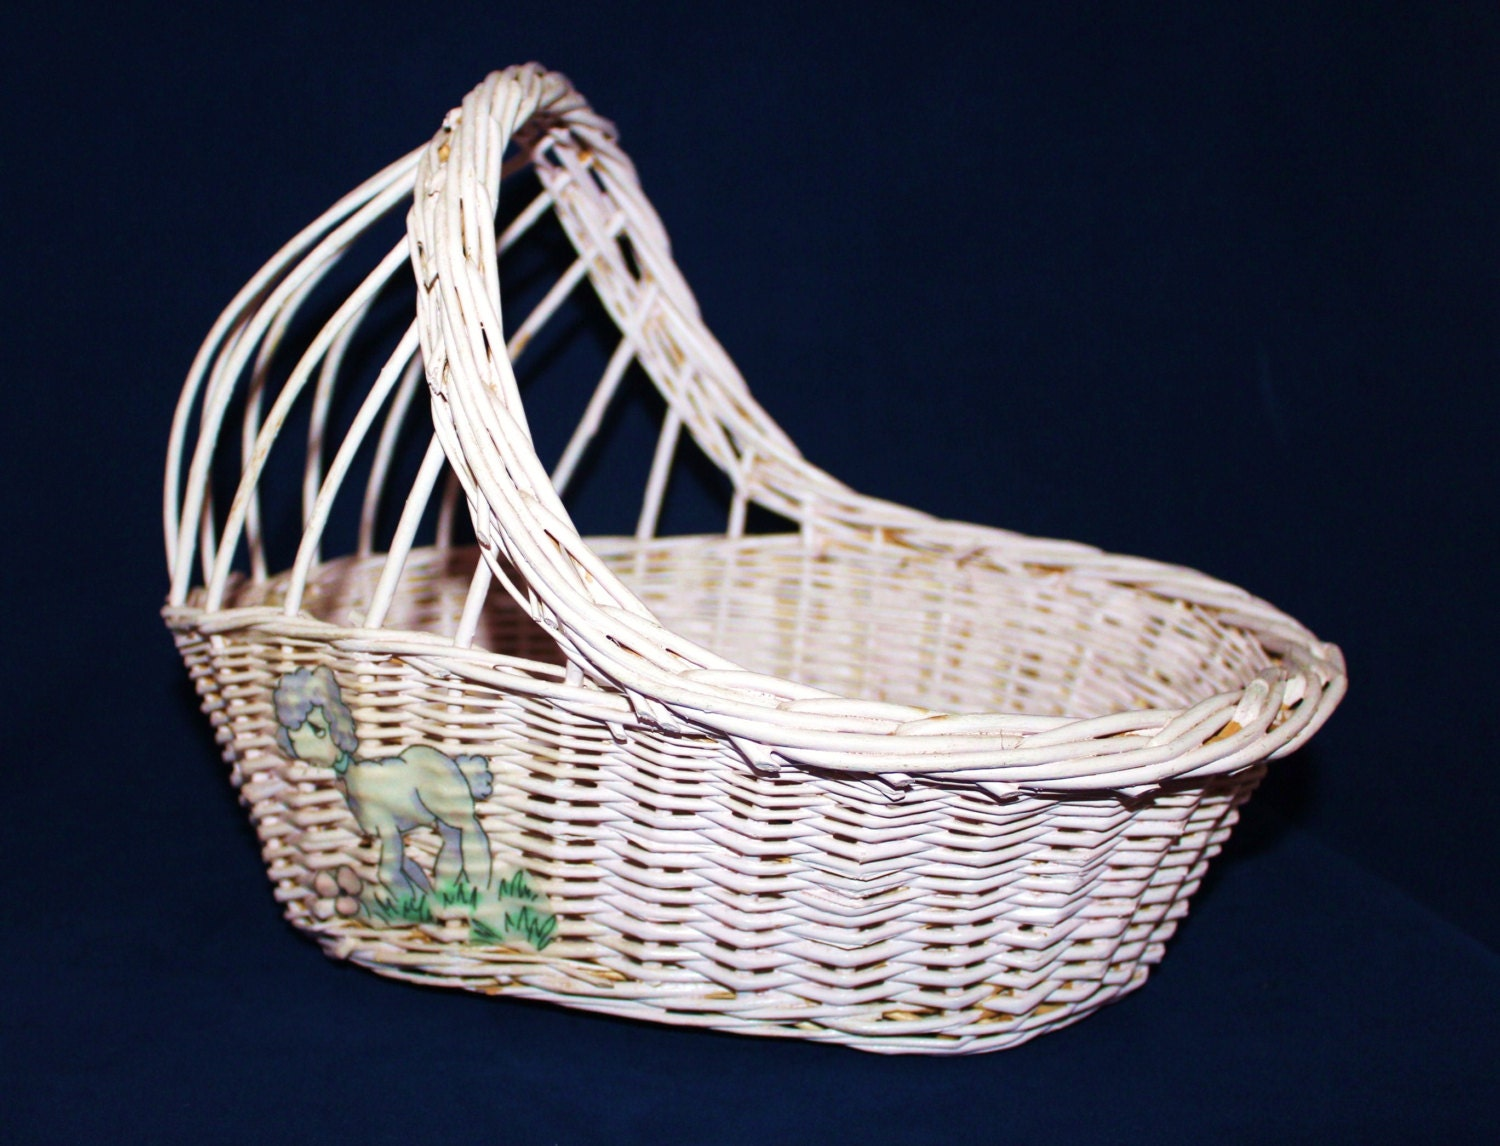 Ts Berry Furniture Wicker baby doll cradle Easter basket vintage toy